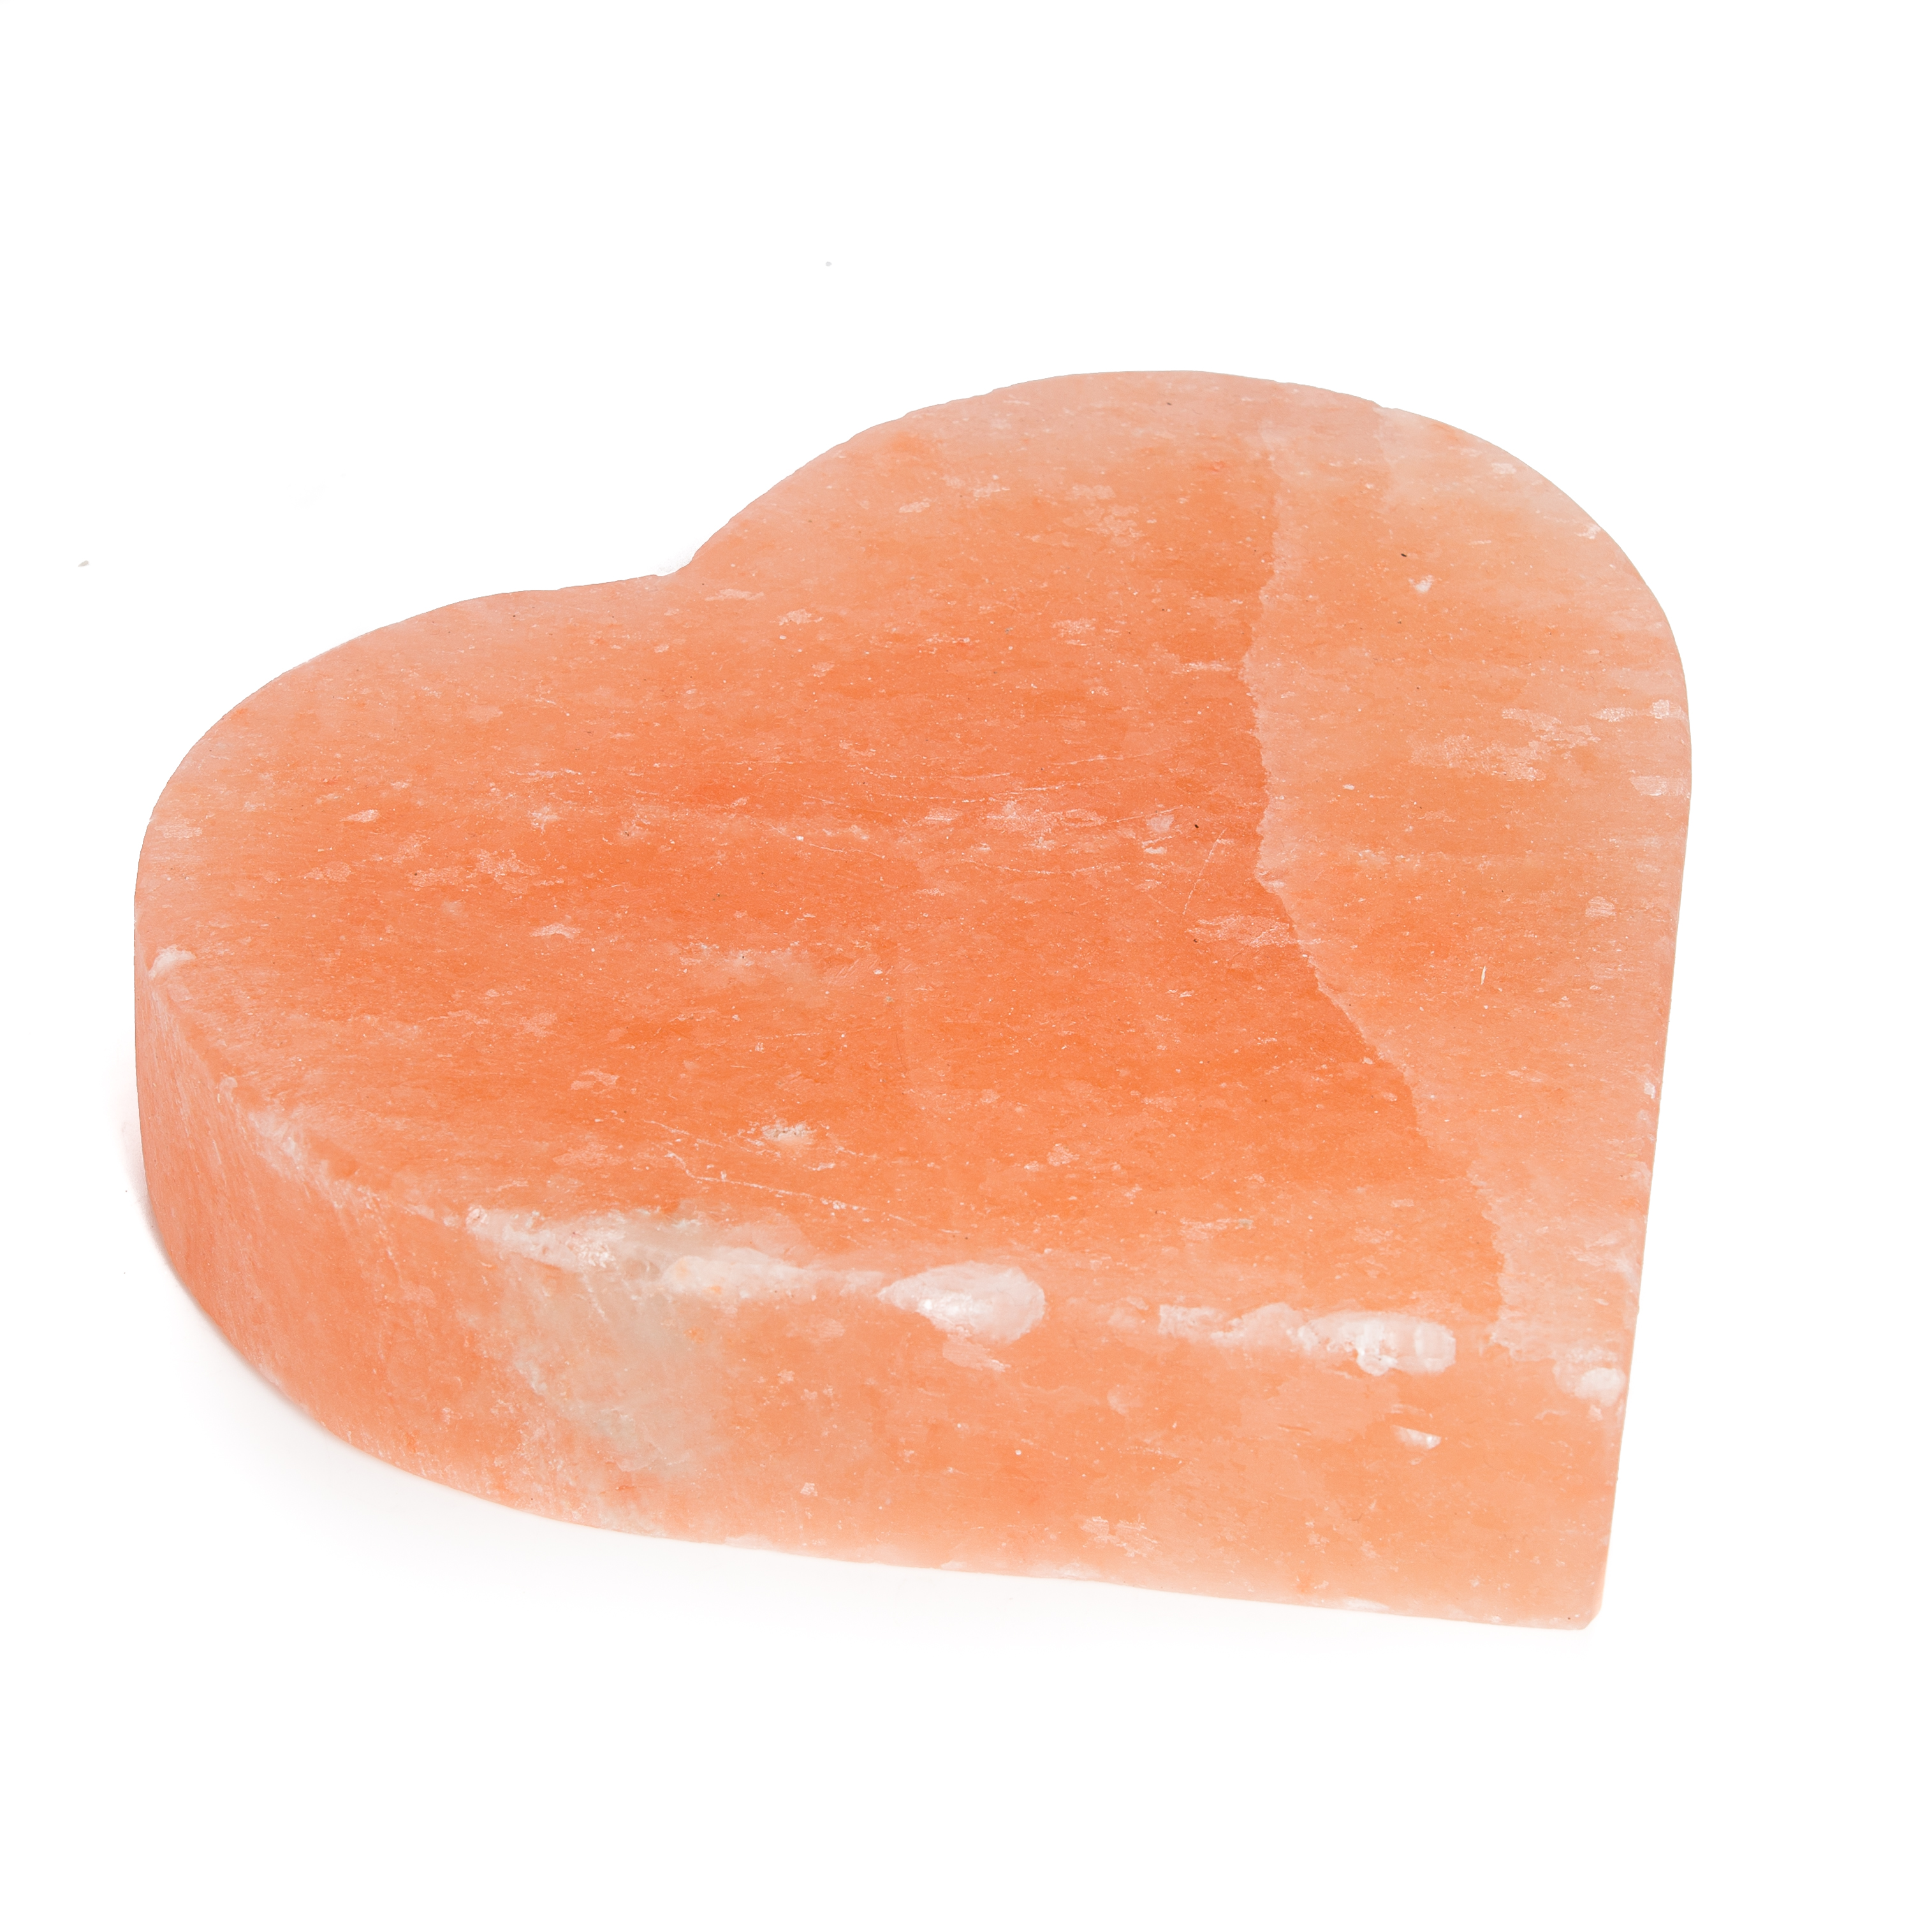 Salthouse Heart Shaped Himalayan Salt Block in Box